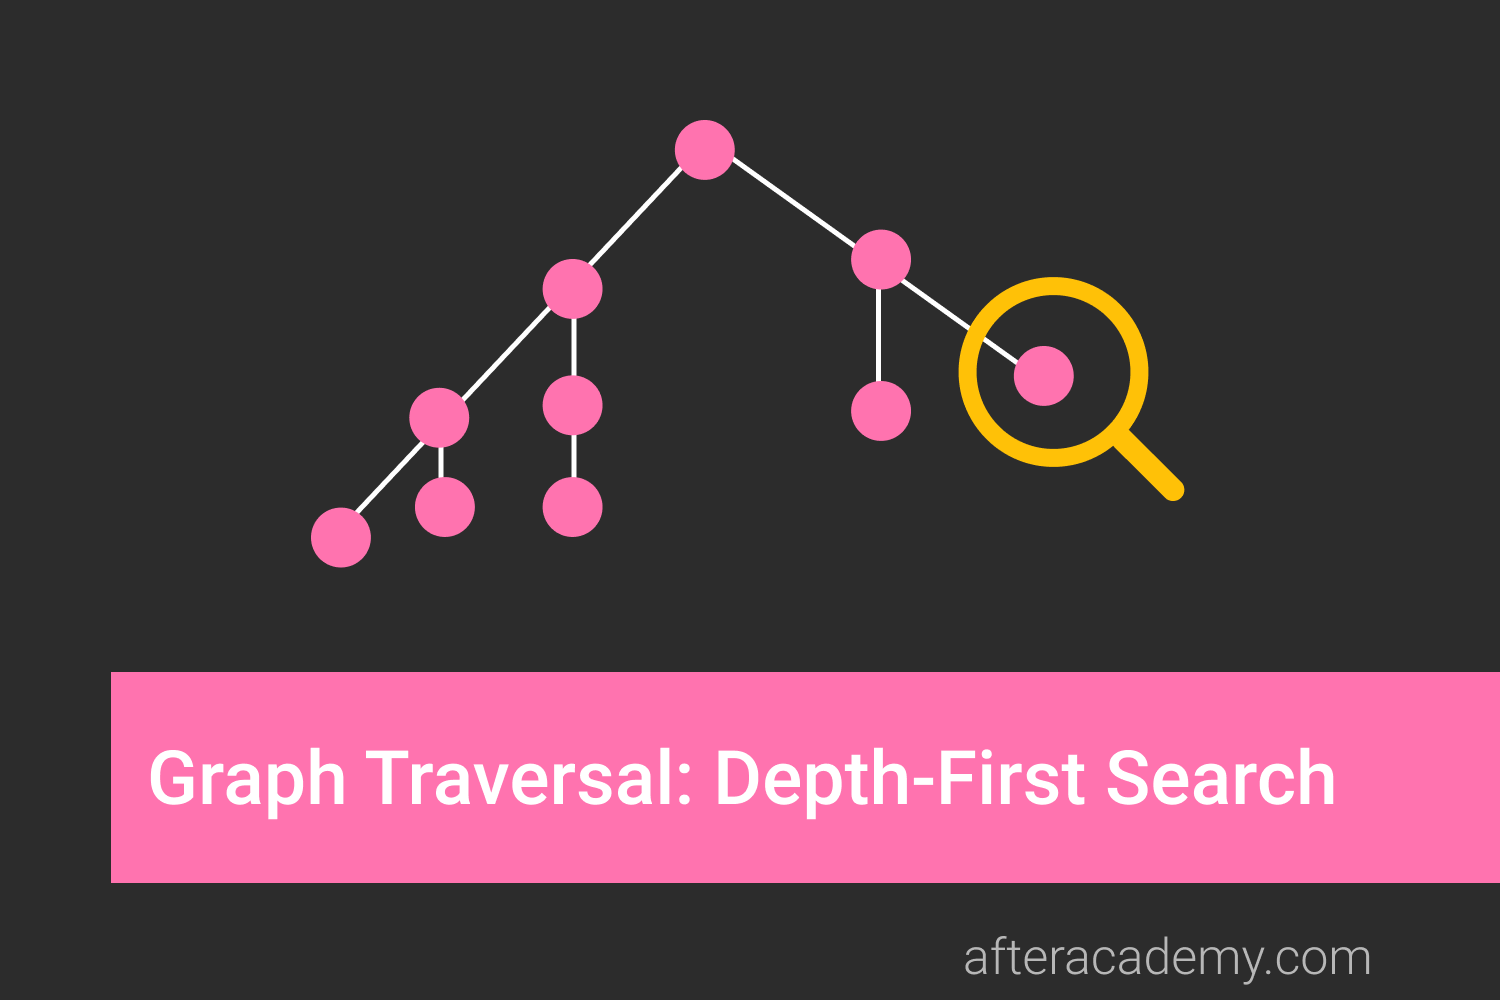 Graph Traversal: Depth First Search